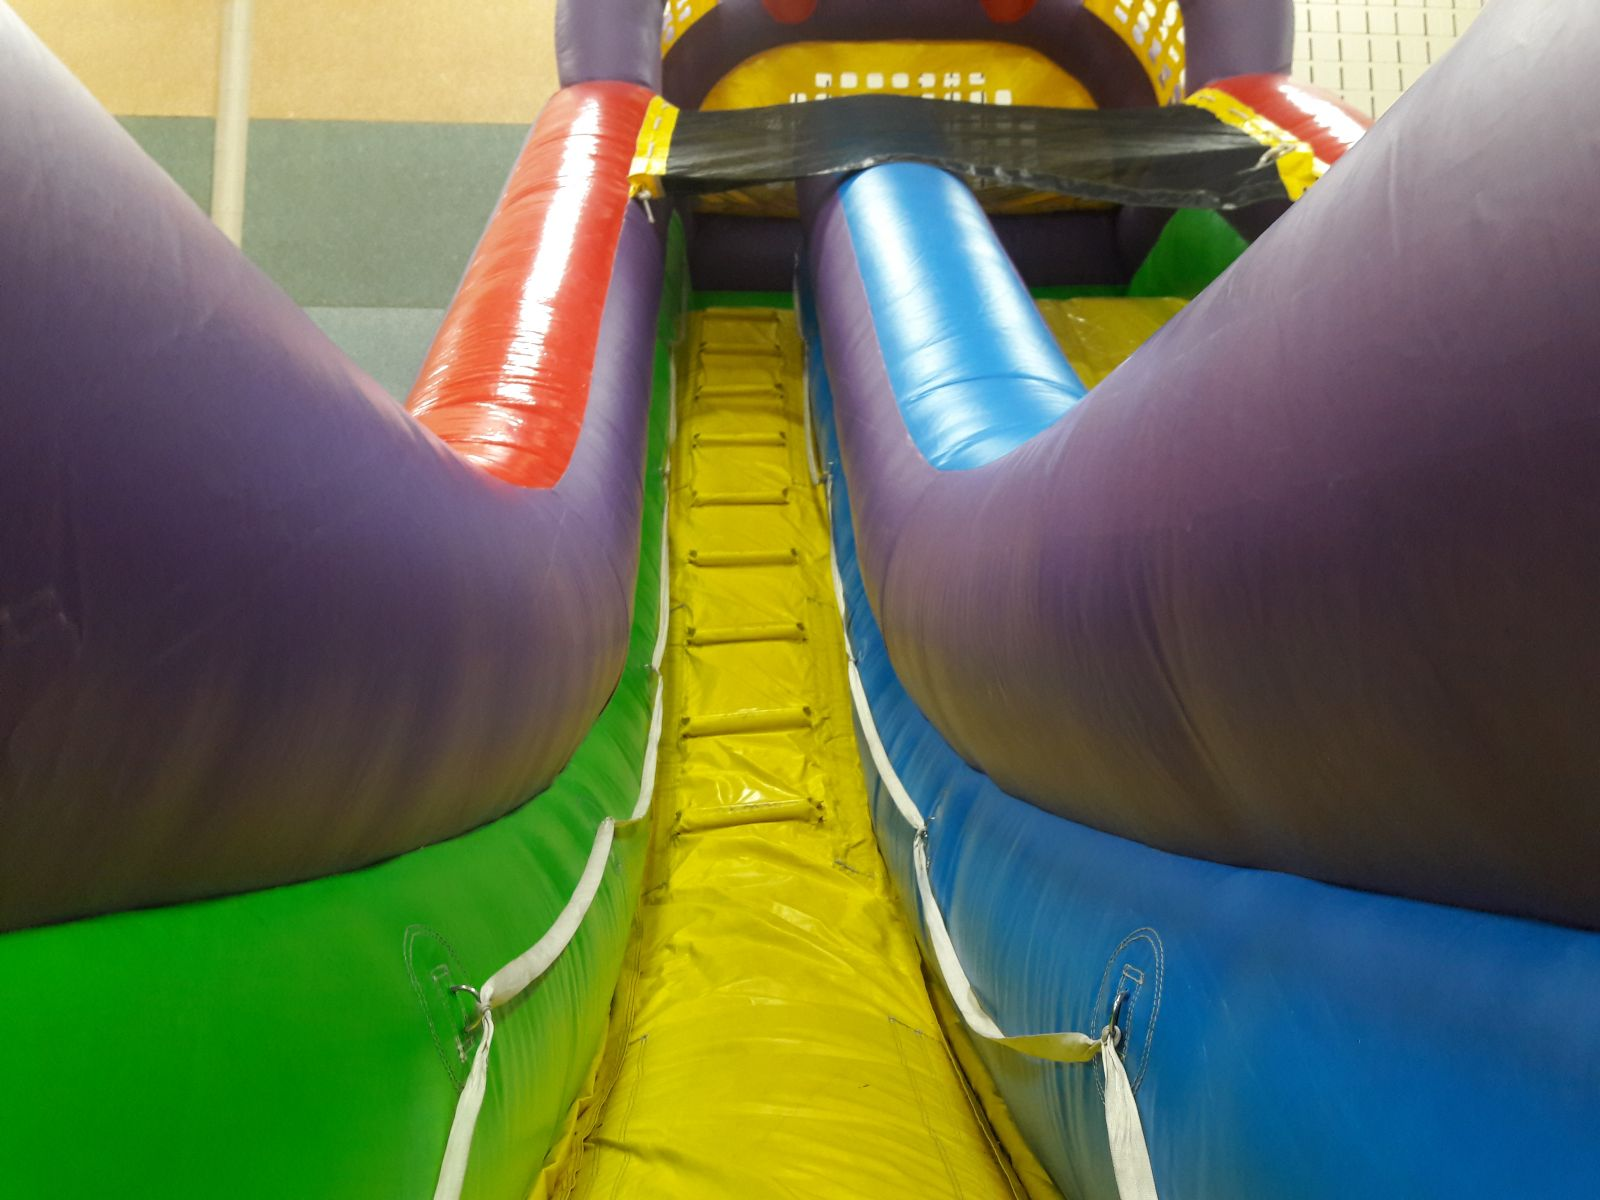 Climbing wall to the top of the 18 foot tall Ultimate Dry Slide Inflatable Rental